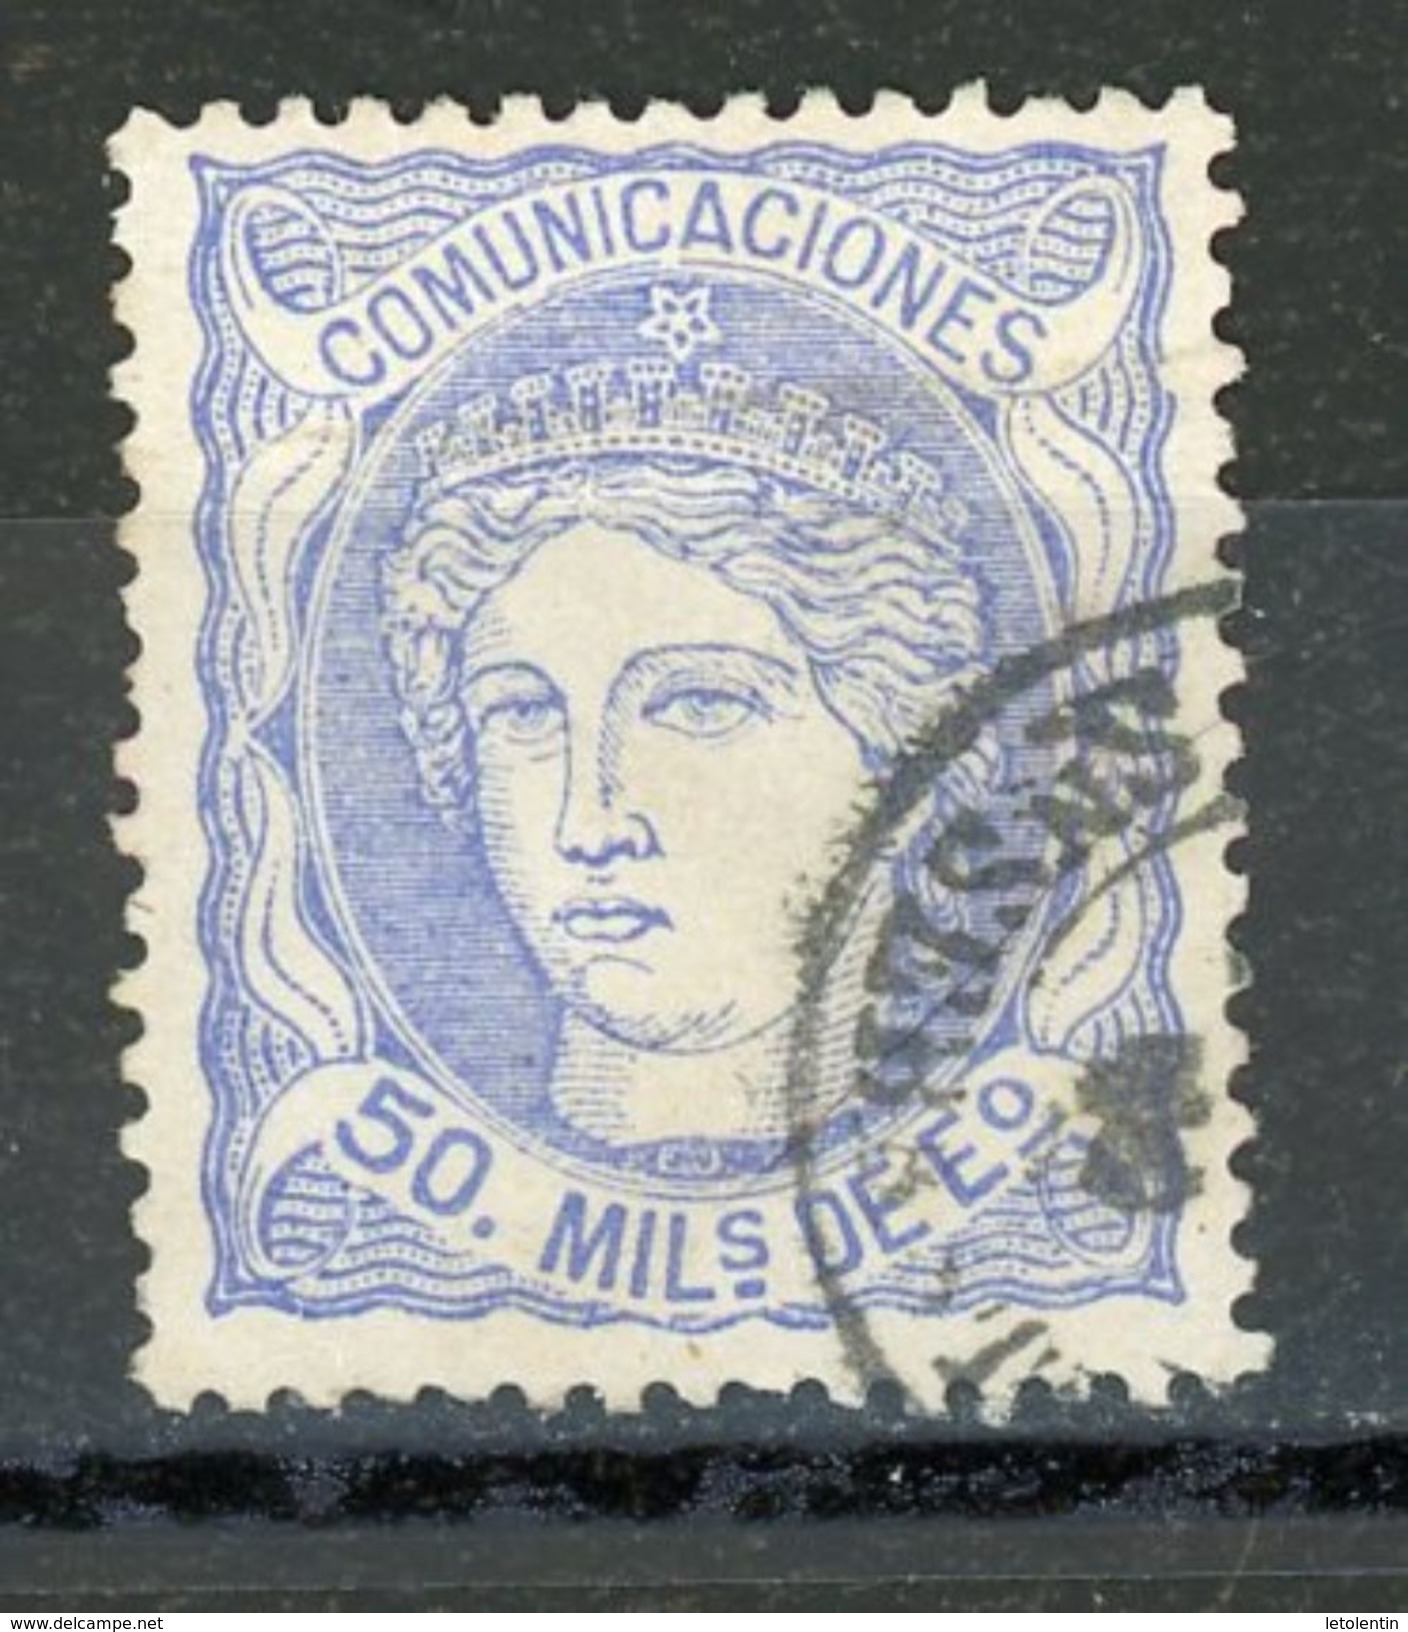 ESPAGNE : SOUVERAINS - N° Yvert 107 Obli. - Used Stamps